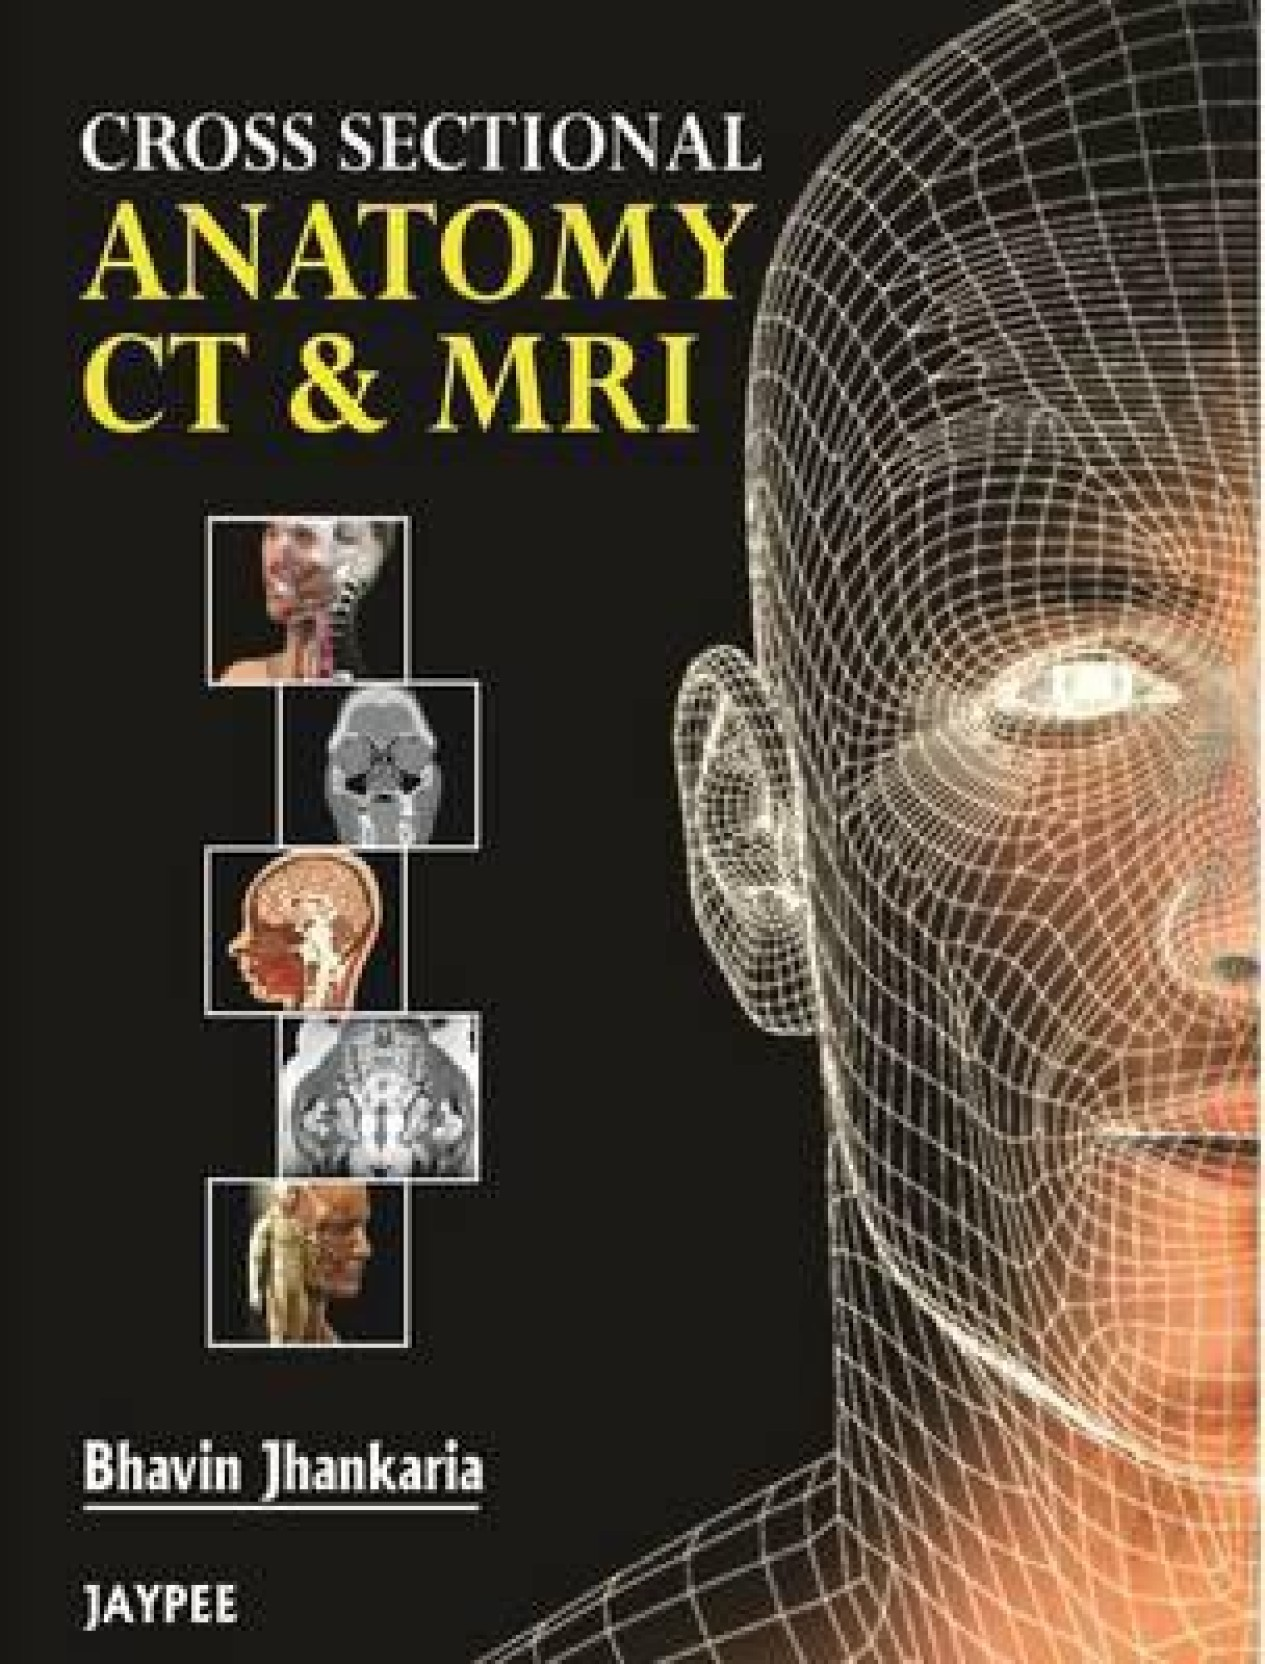 Cross Sectional Anatomy CT & MRI 1st Edition - Buy Cross Sectional ...